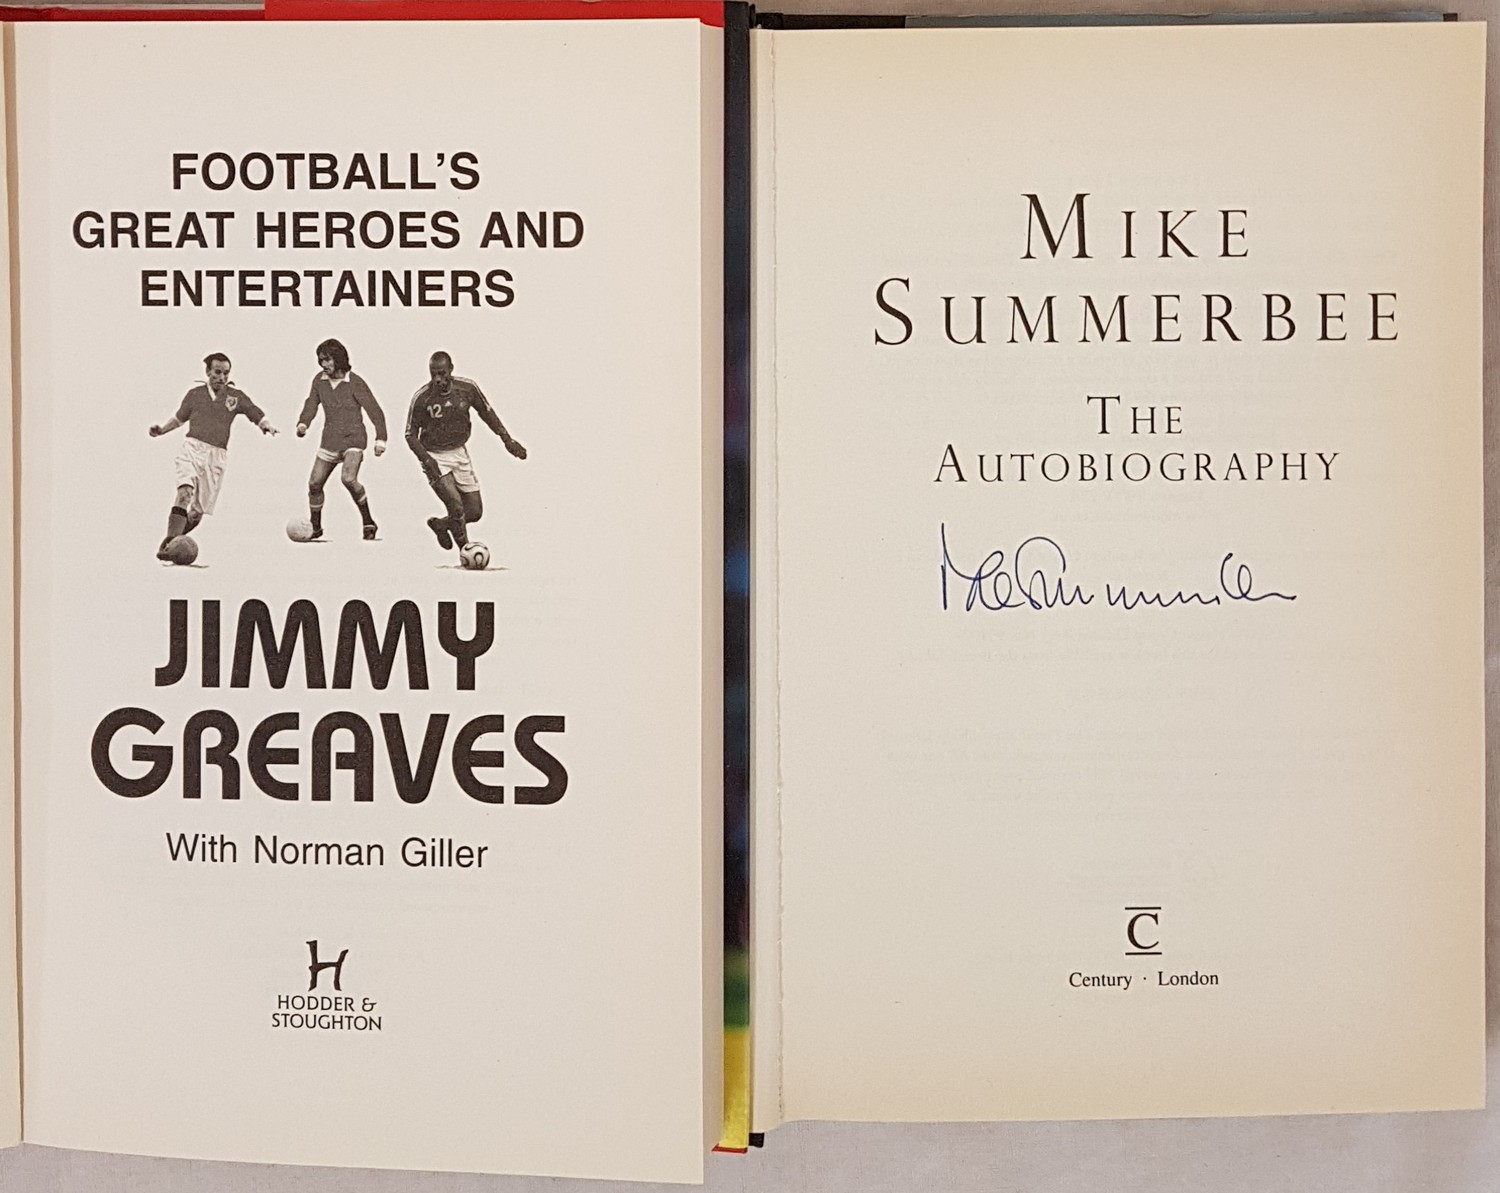 Football's Great Heroes and Entertainers, Jimmy Greaves, 1st Edition, 1st Printing, 2007, Hodder & - Image 2 of 3